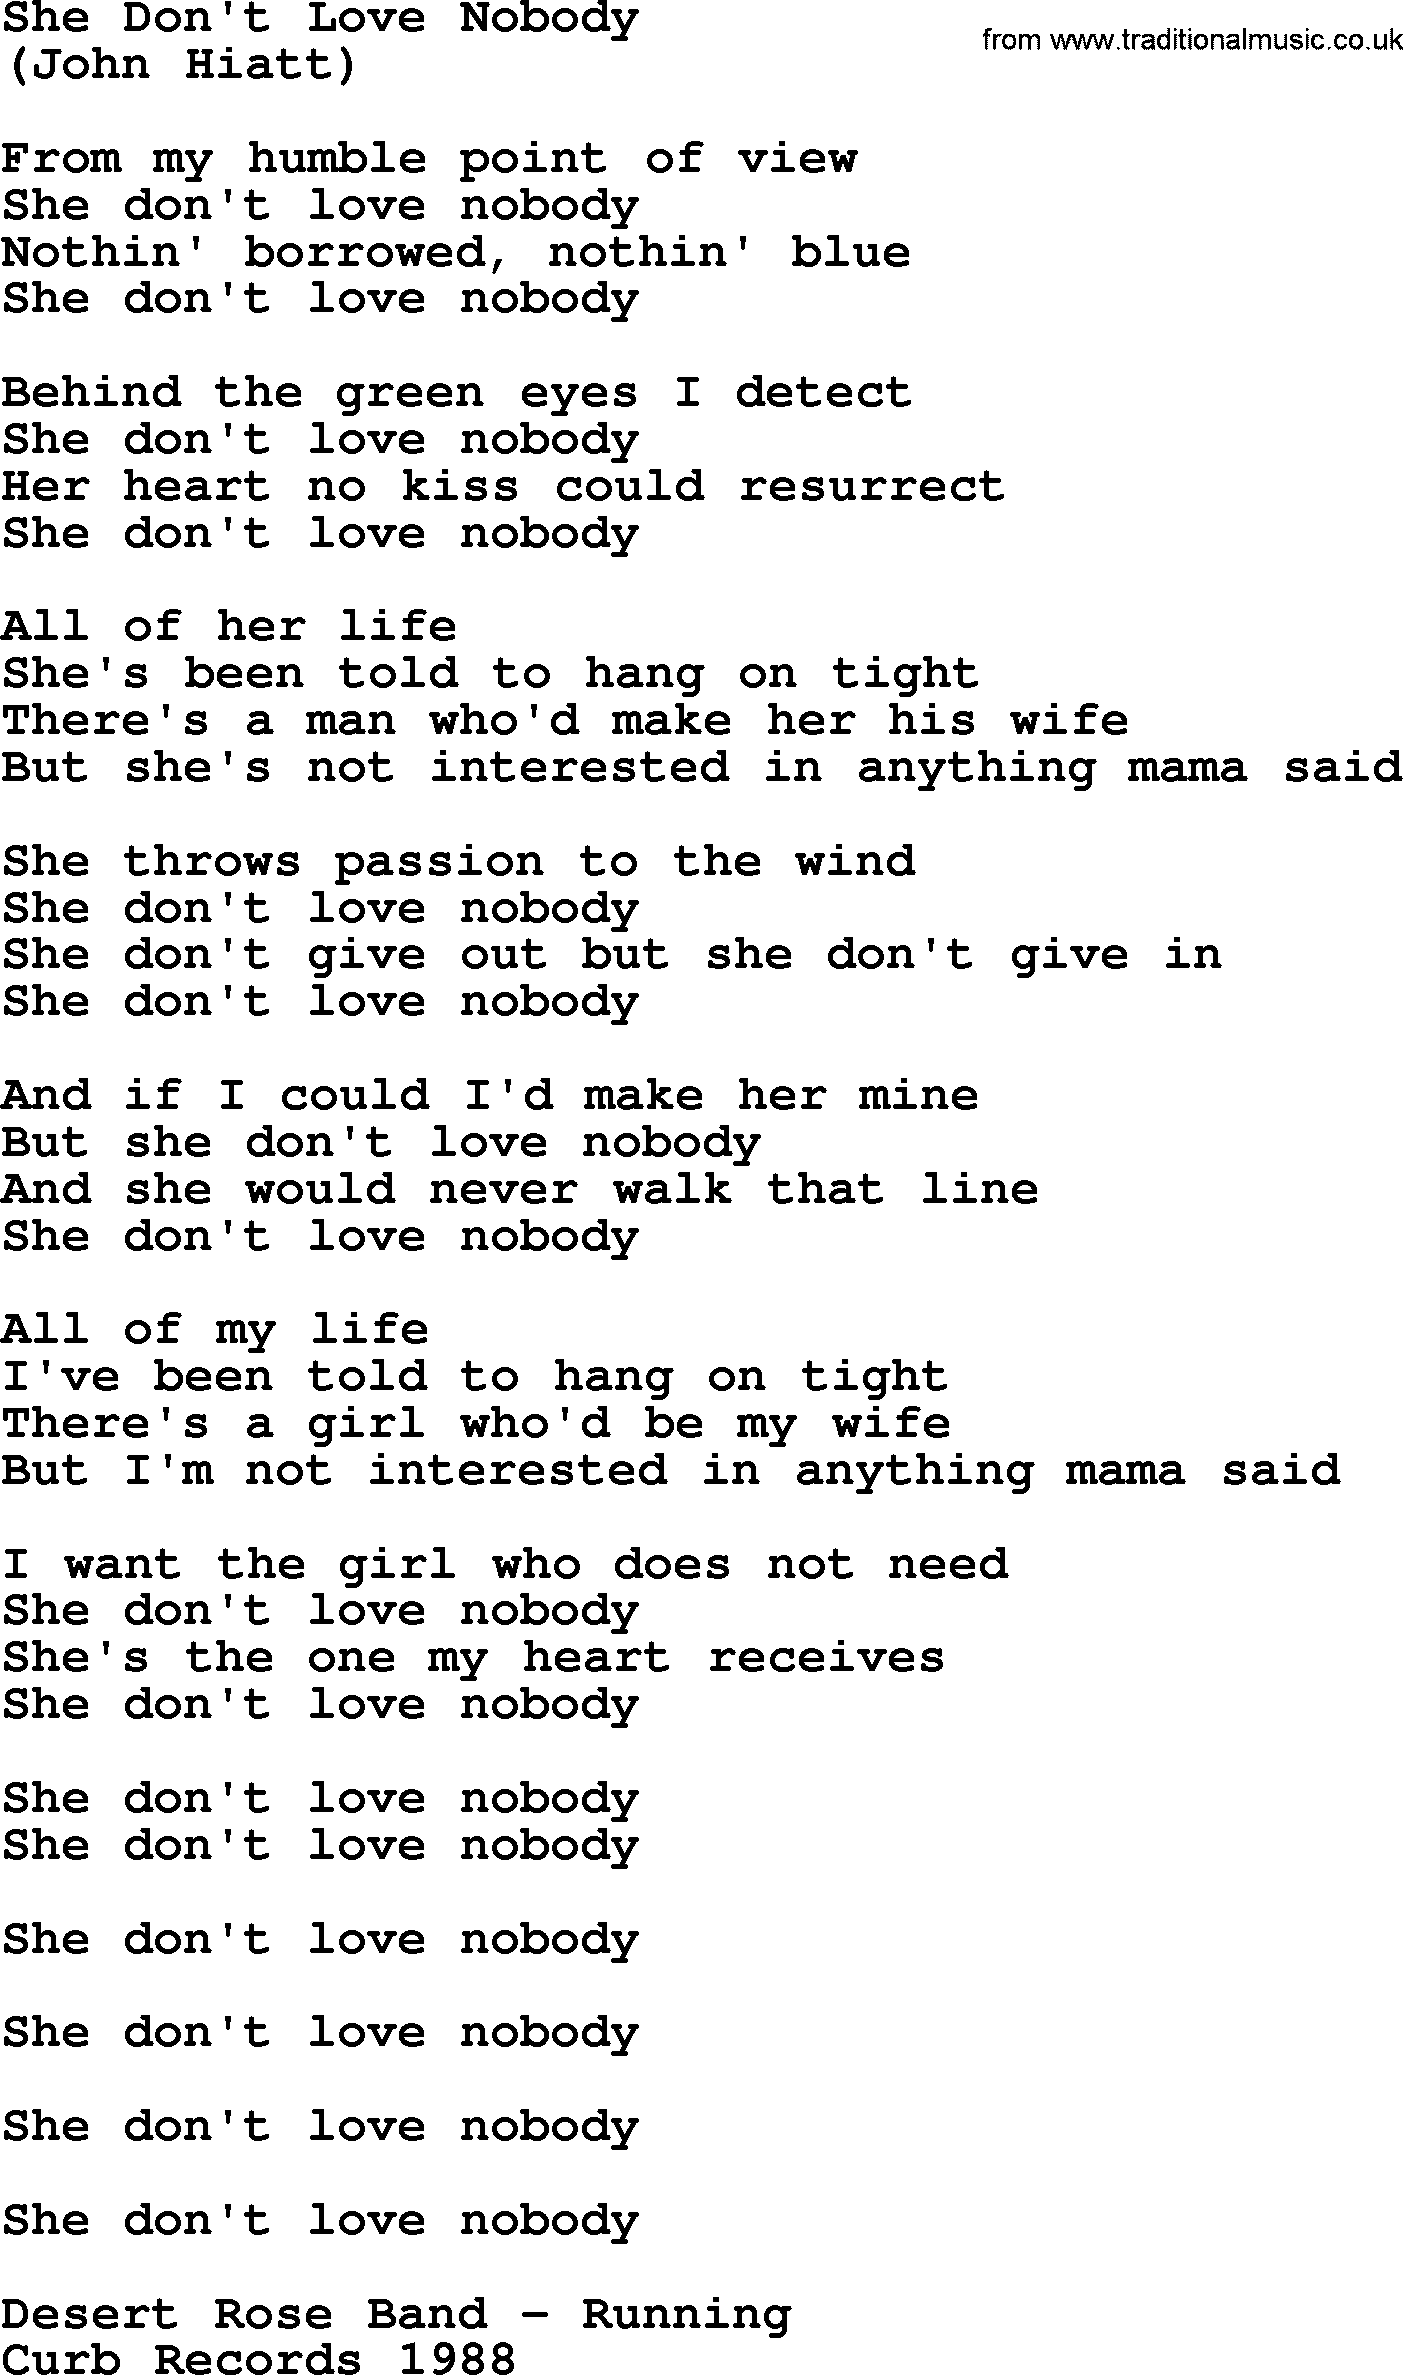 She Don T Love Nobody By The Byrds Lyrics With Pdf The song touches on themes of alienation and. traditional music library